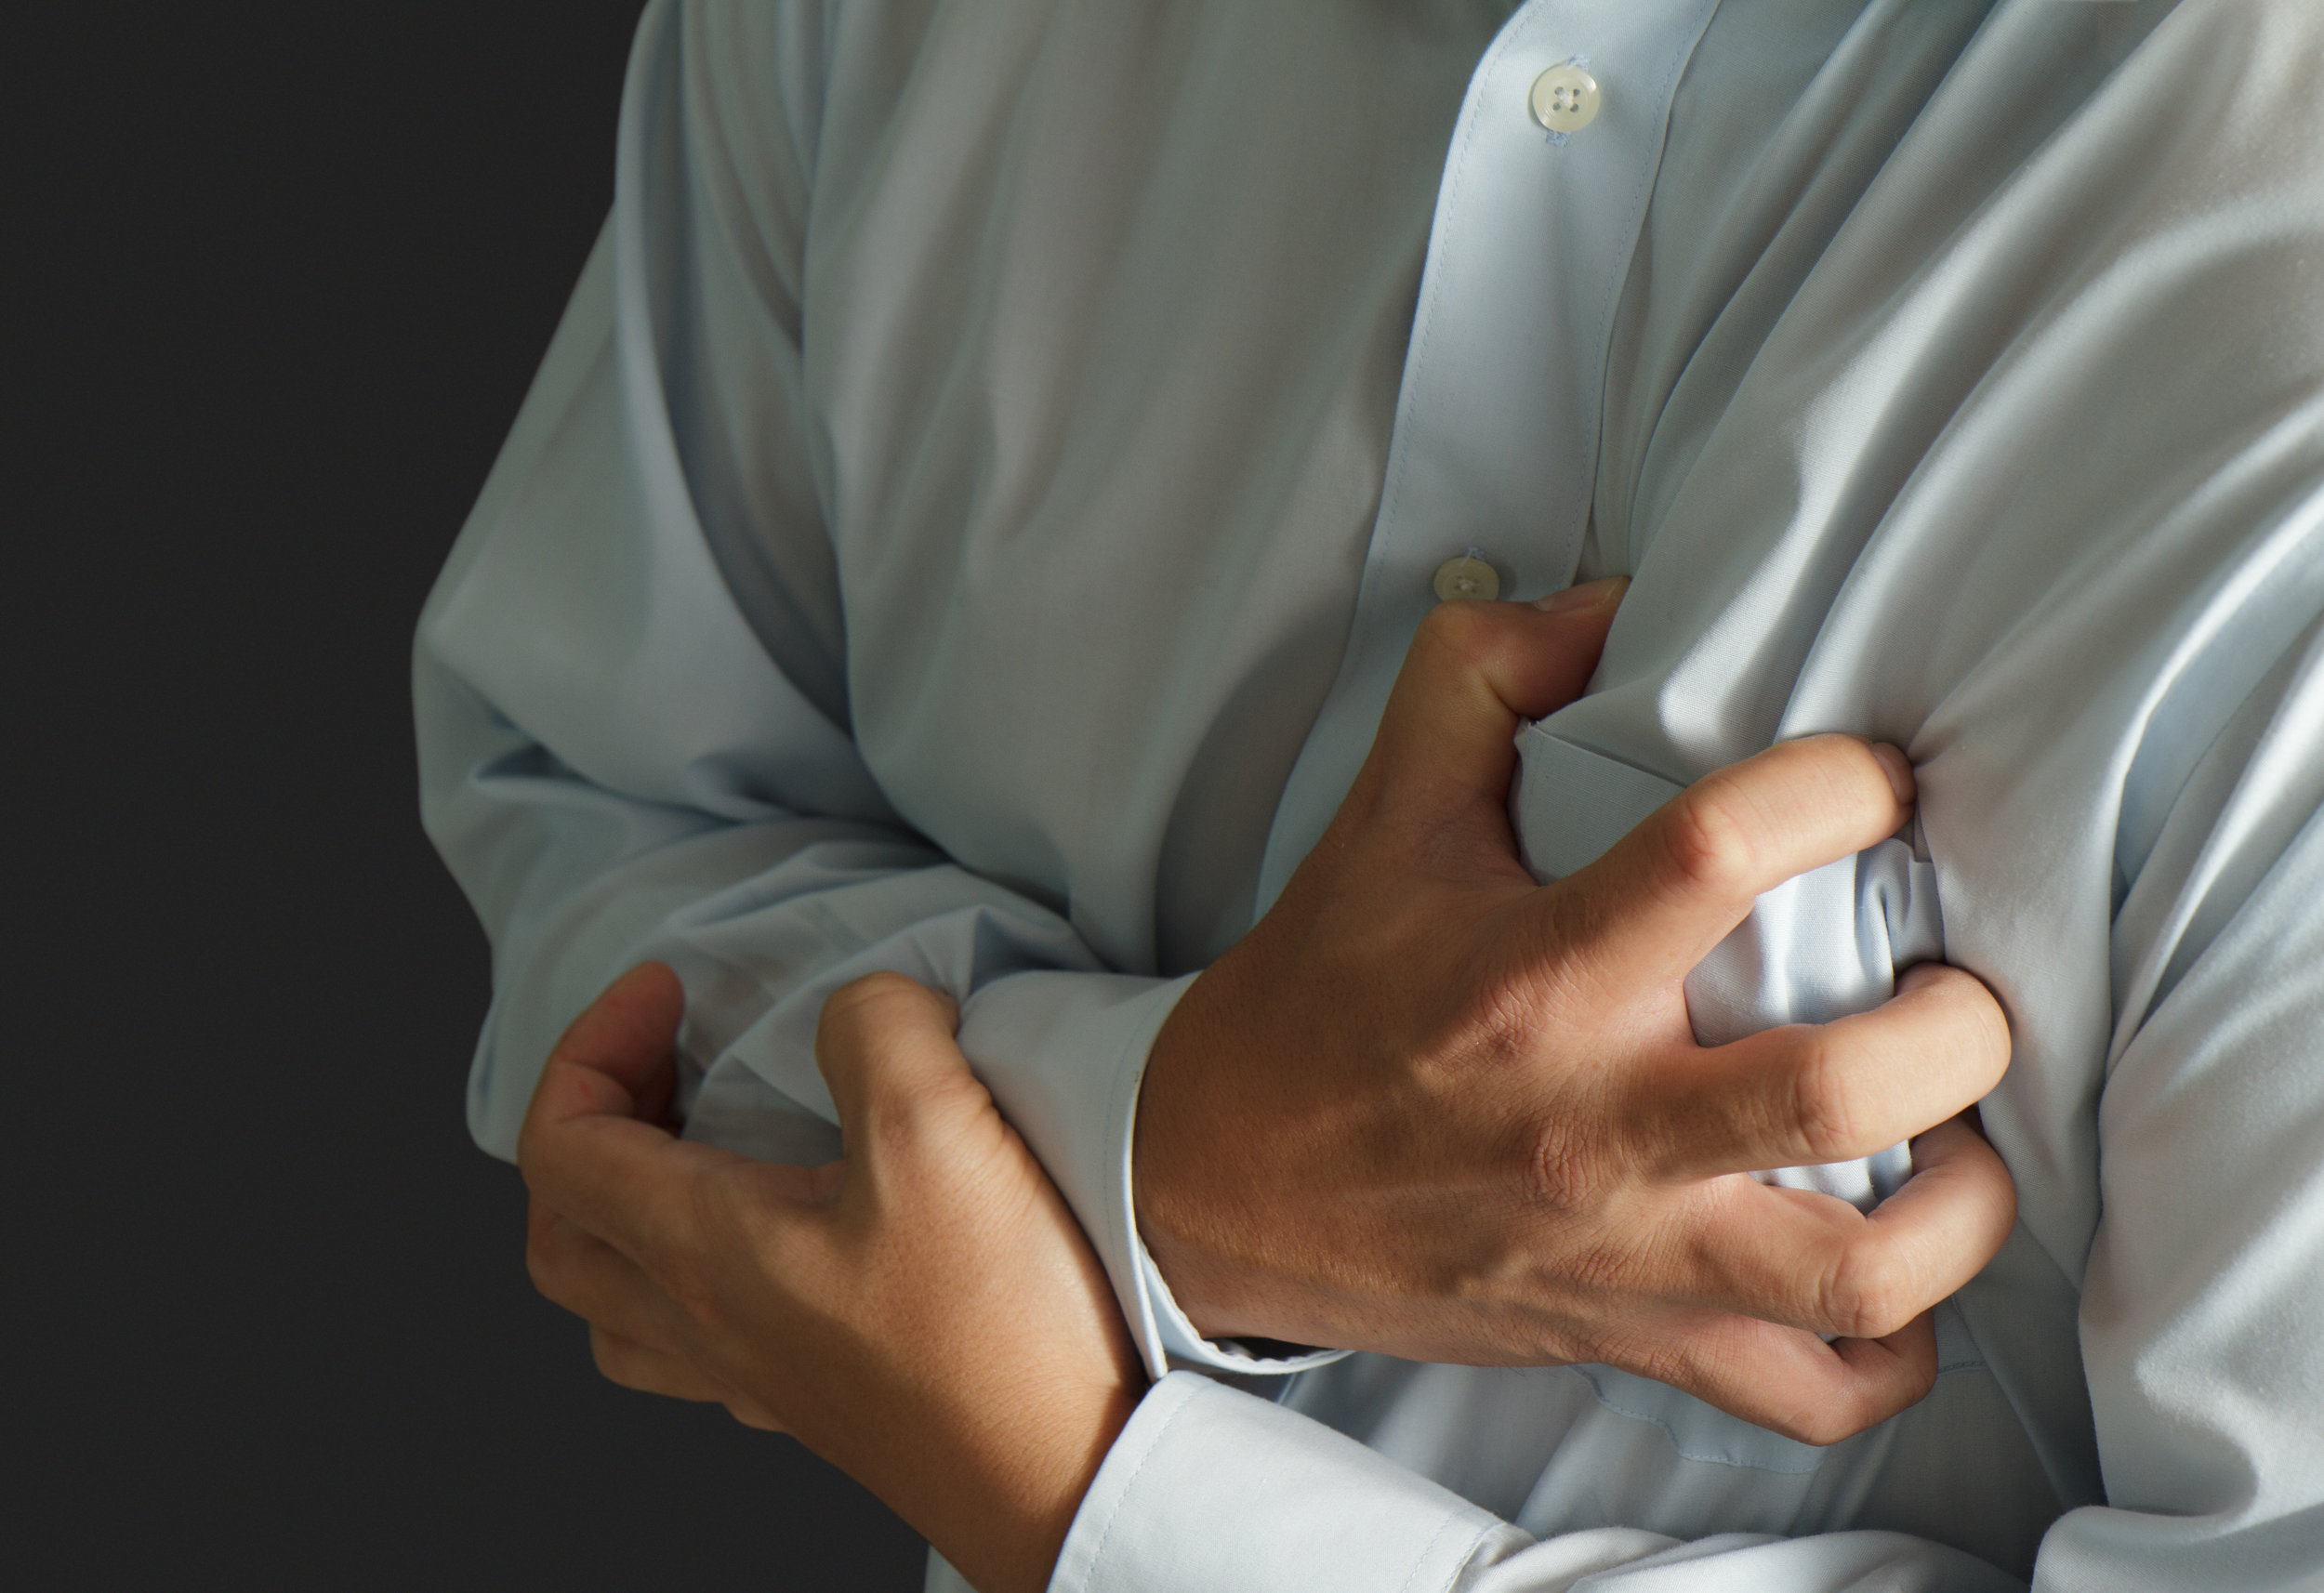 Panic Disorder - Panic Disorder involves intense physical symptoms that last for 15-30 minutes and recur unexpectedly. Click here to learn more.